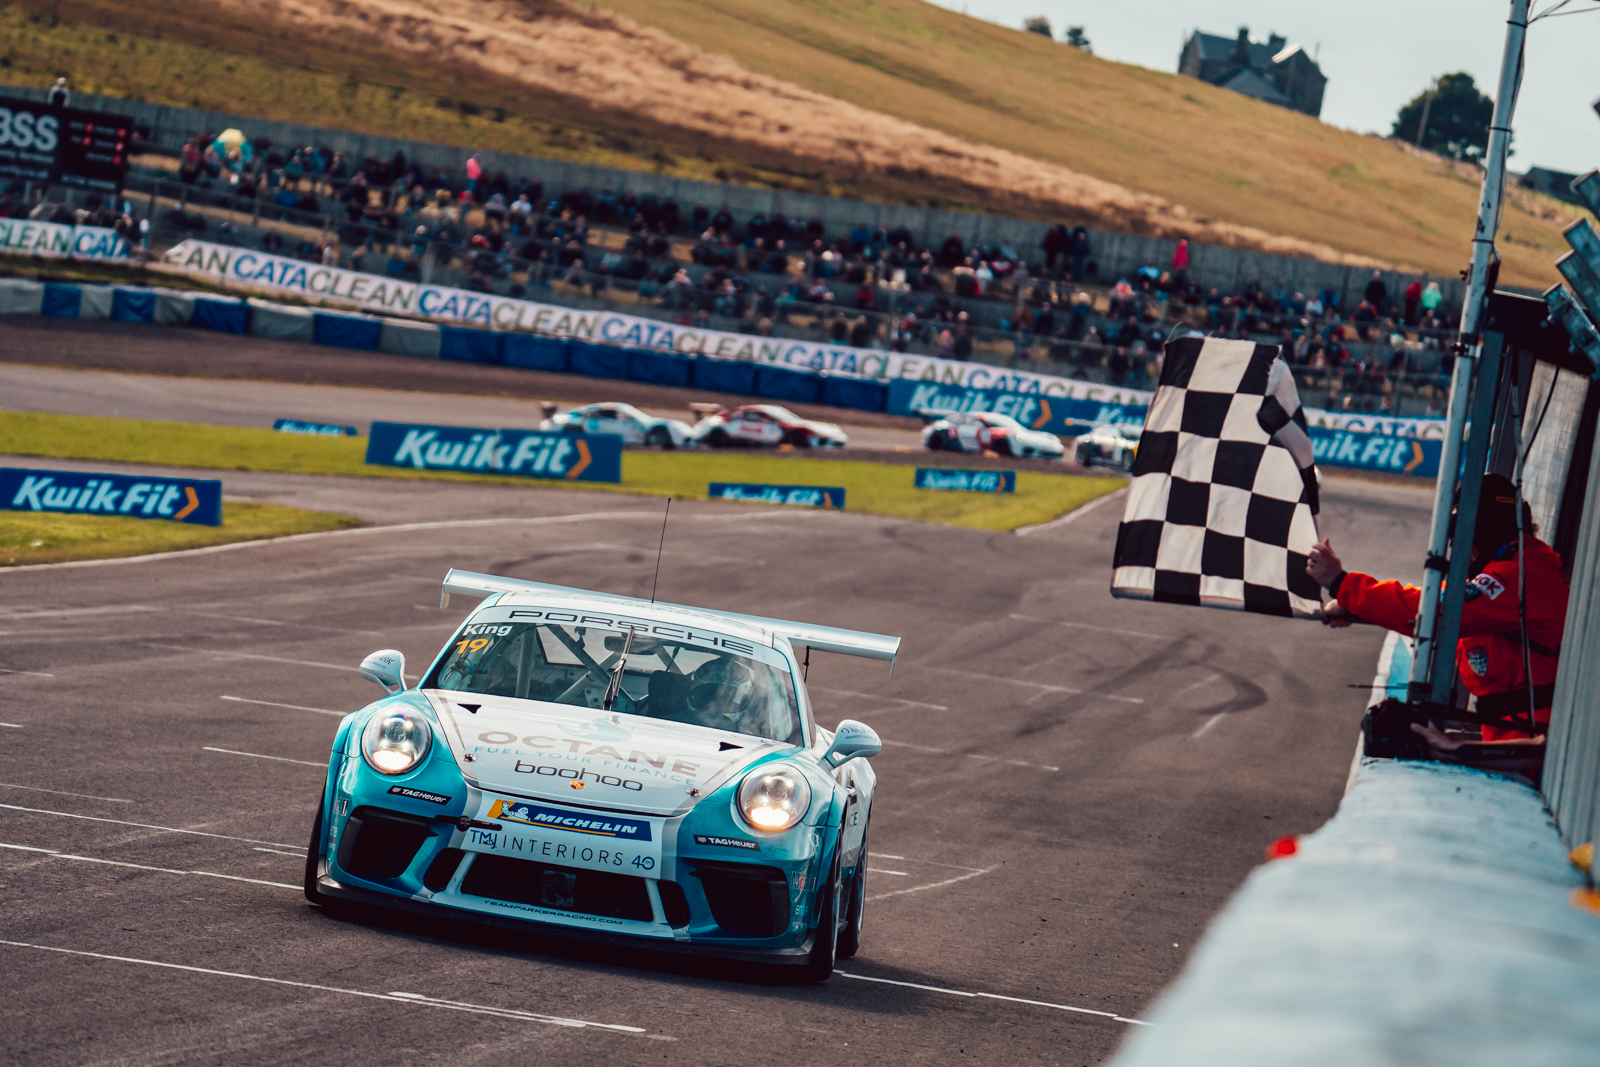 Harry King wraps up impressive Knockhill victory